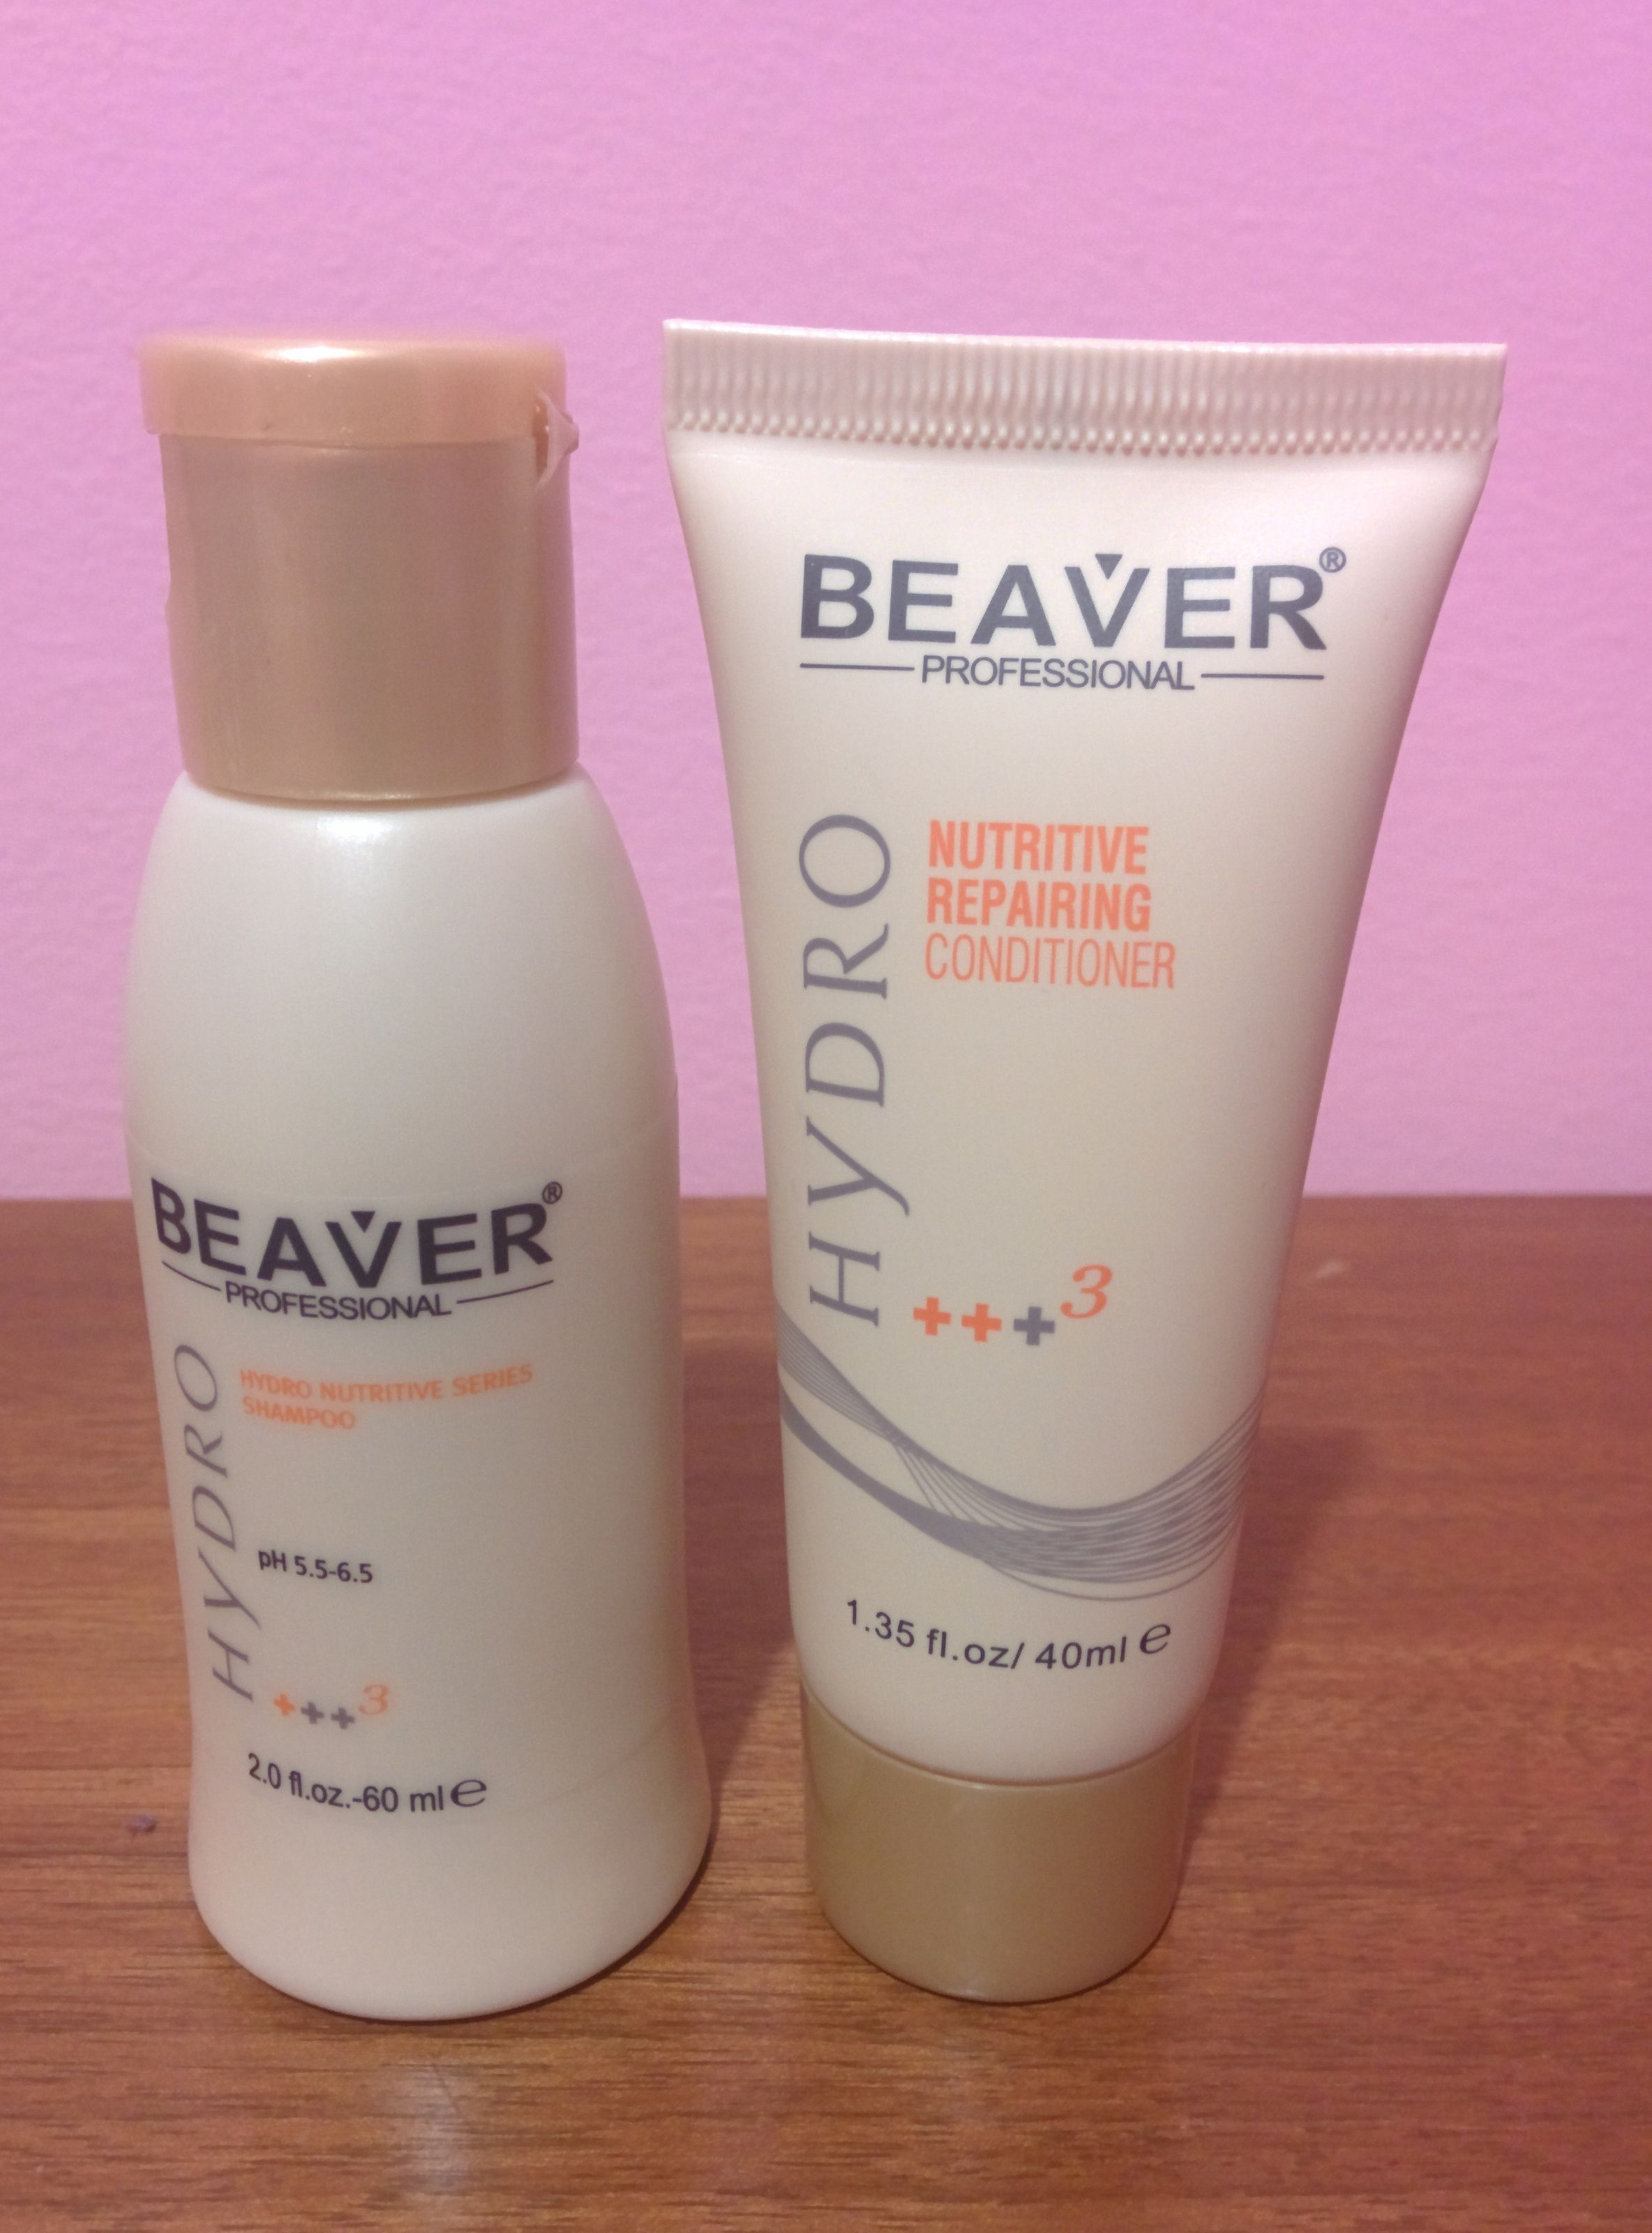 Beaver Professional Hydro Nutritive Shampoo, 60 ml / 2.0 oz Beaver Professional Nutritive Repairing Conditioner, 40 ml / 1.35 oz